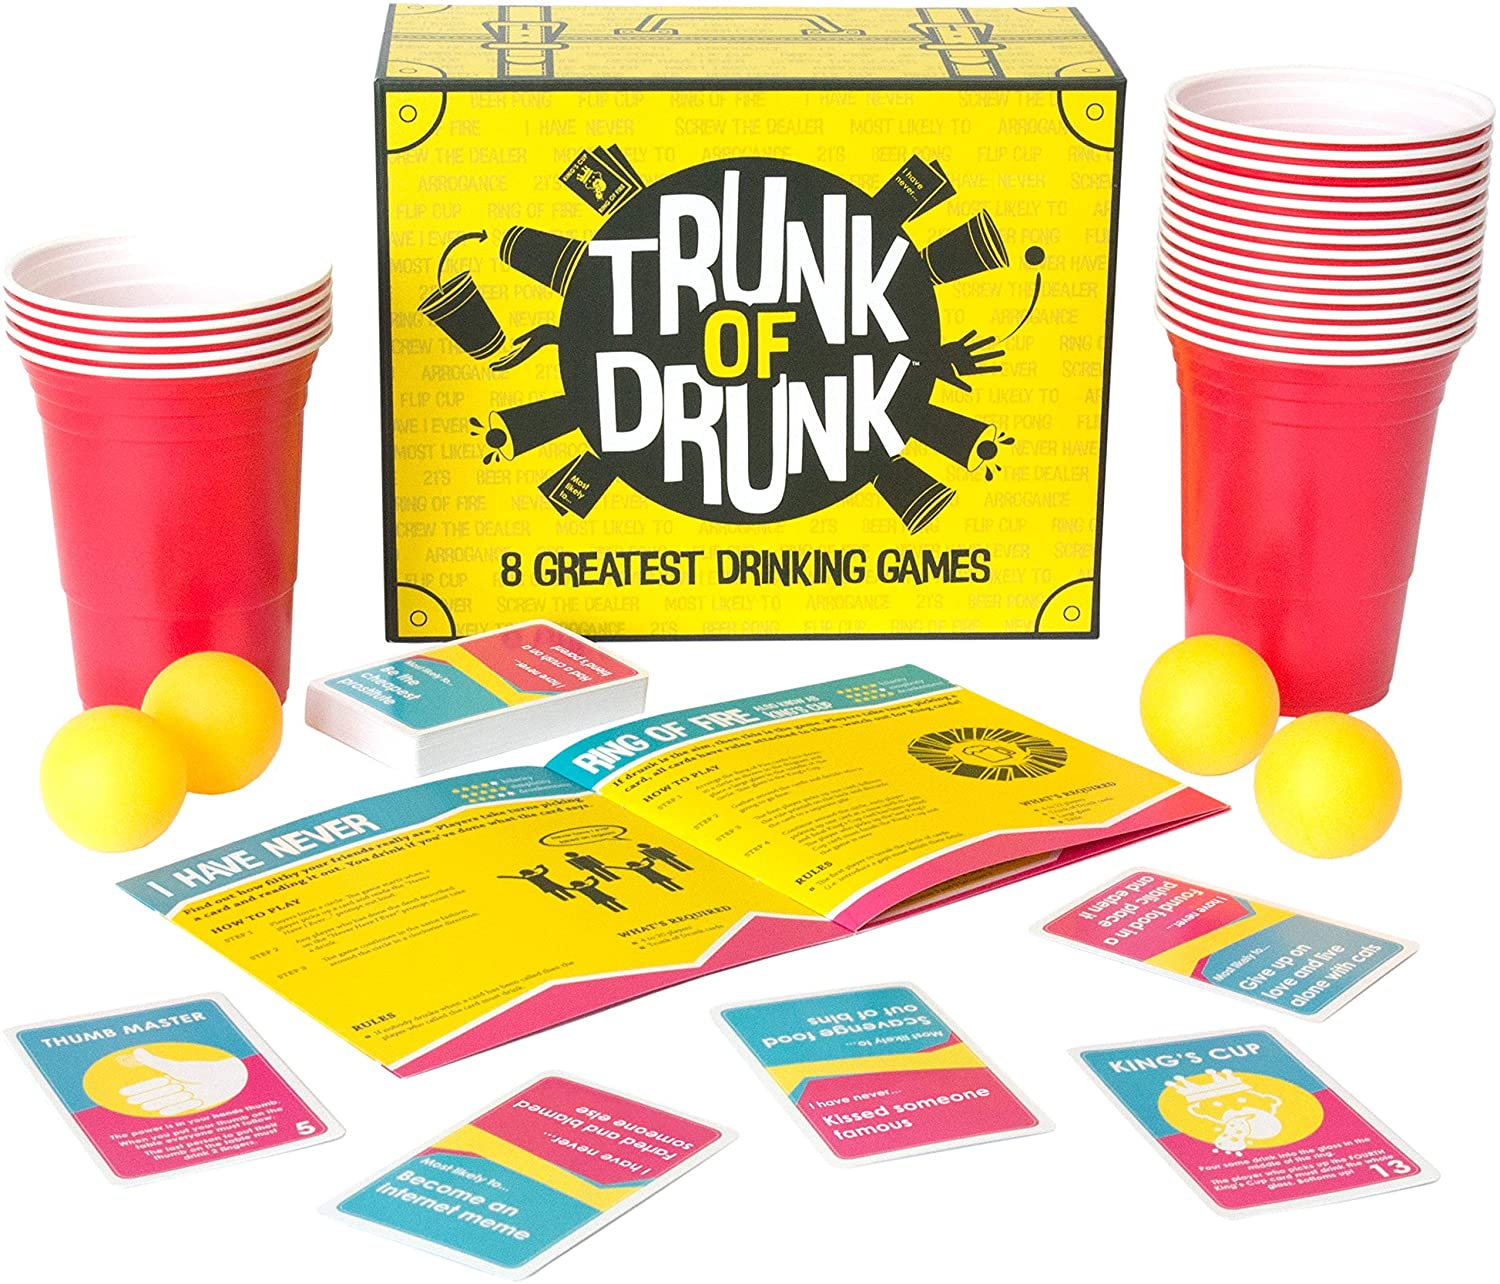 This box has eight popular drinking games all rolled into one, The Manc